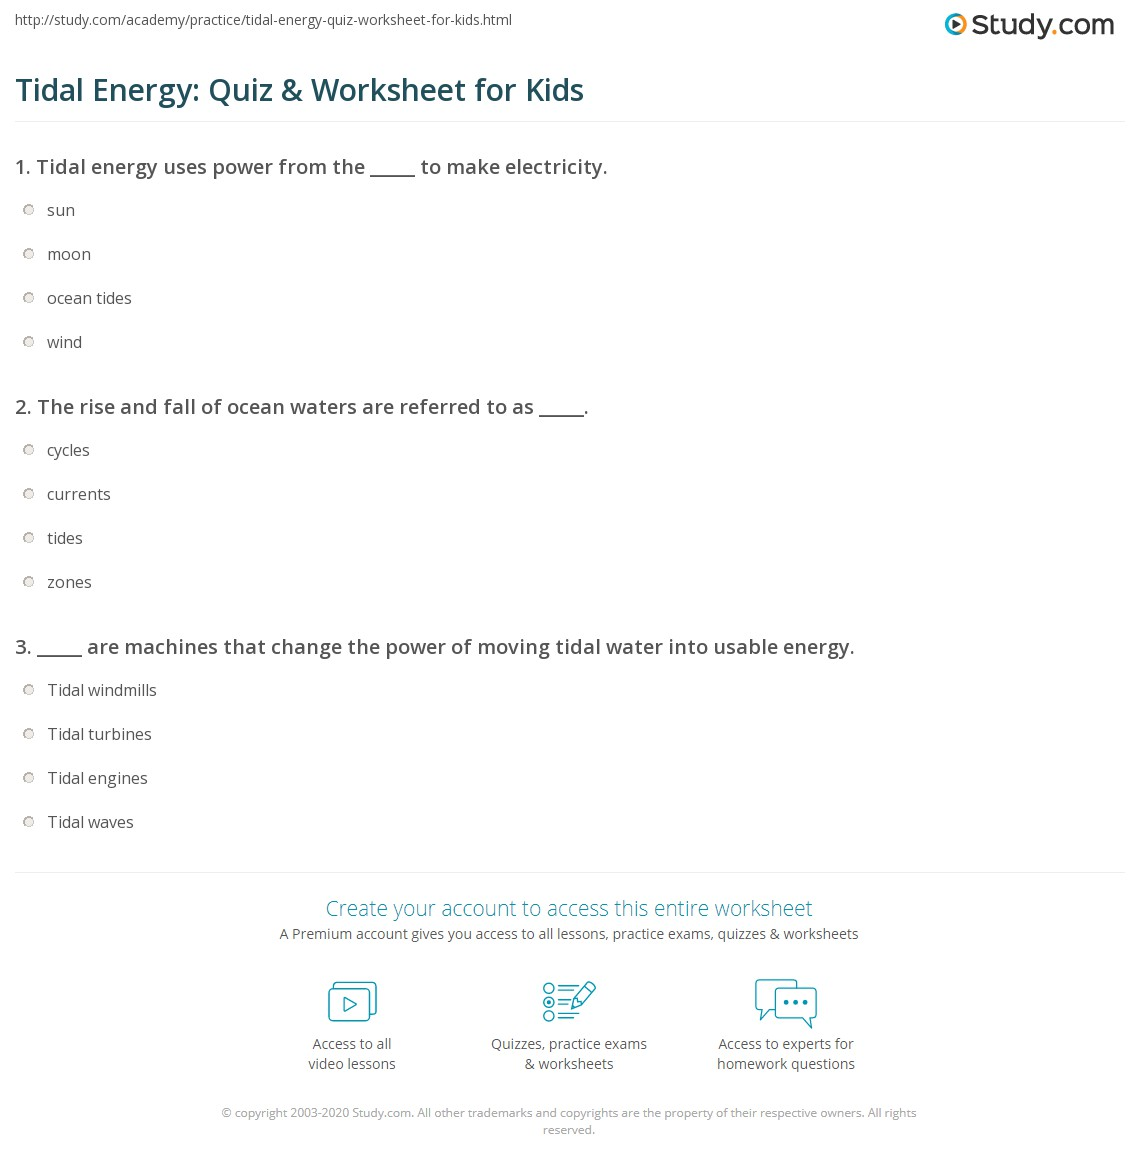 Tidal Energy: Quiz & Worksheet for Kids | Study.com